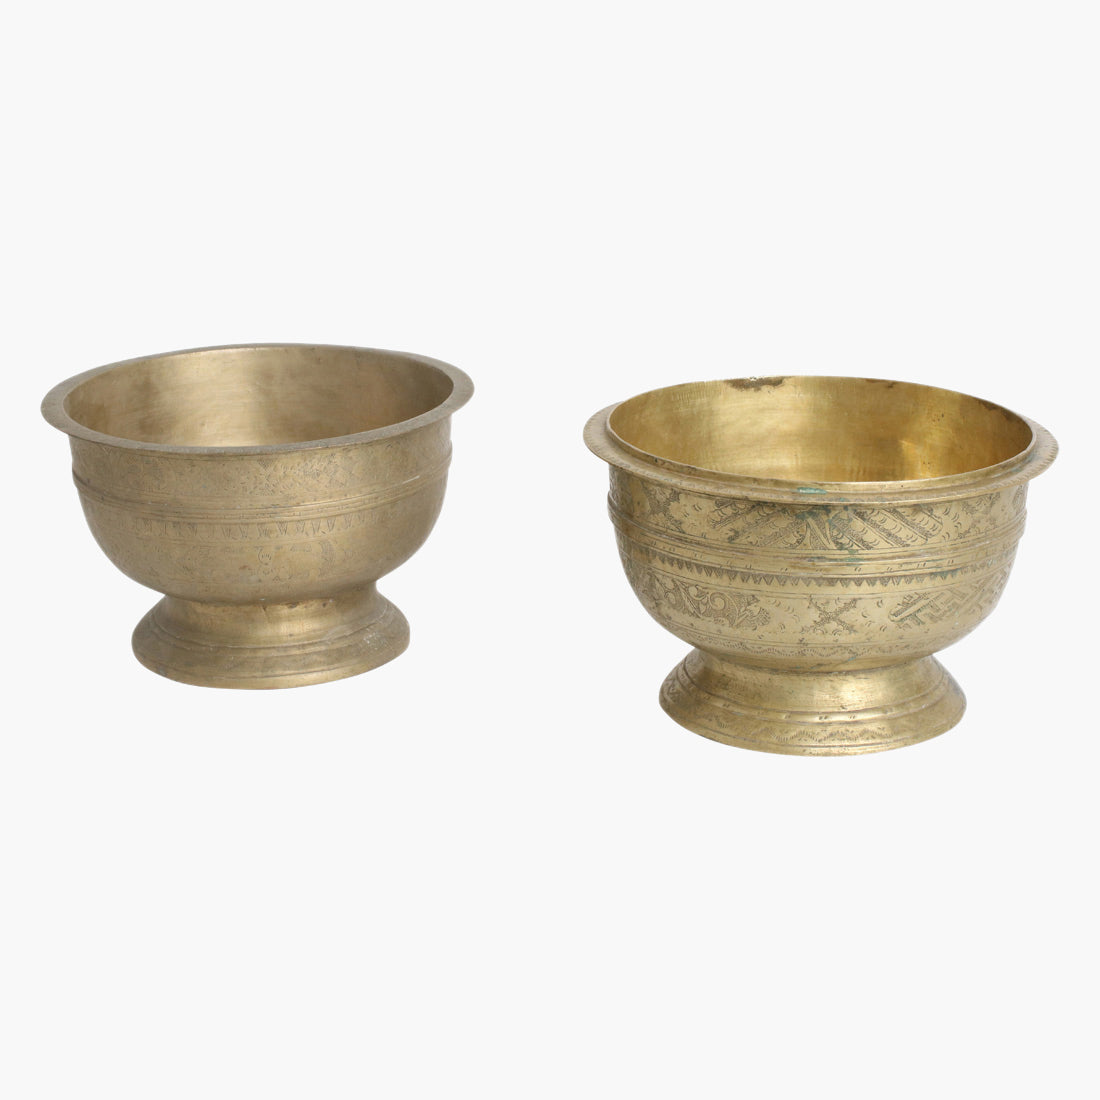 Brass offering bowl